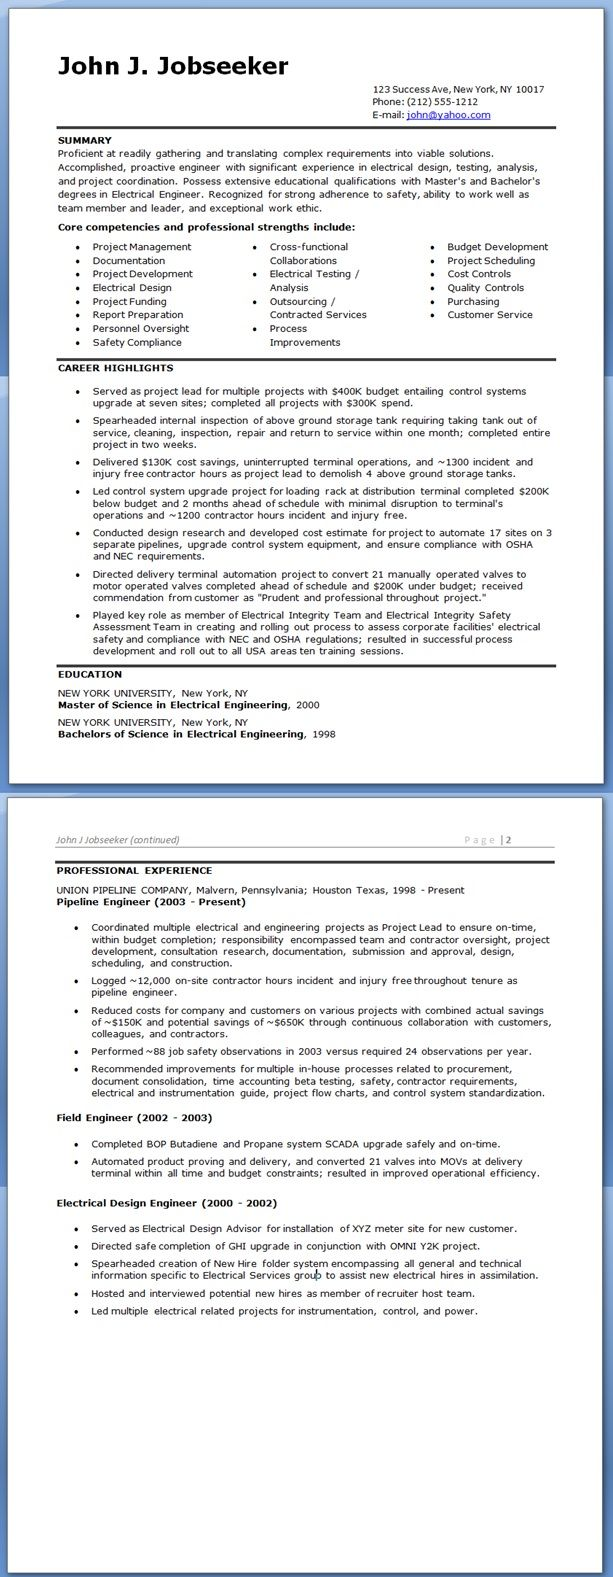 Electrical Engineer Resume Sample Doc (Experienced) | LIBROS ...